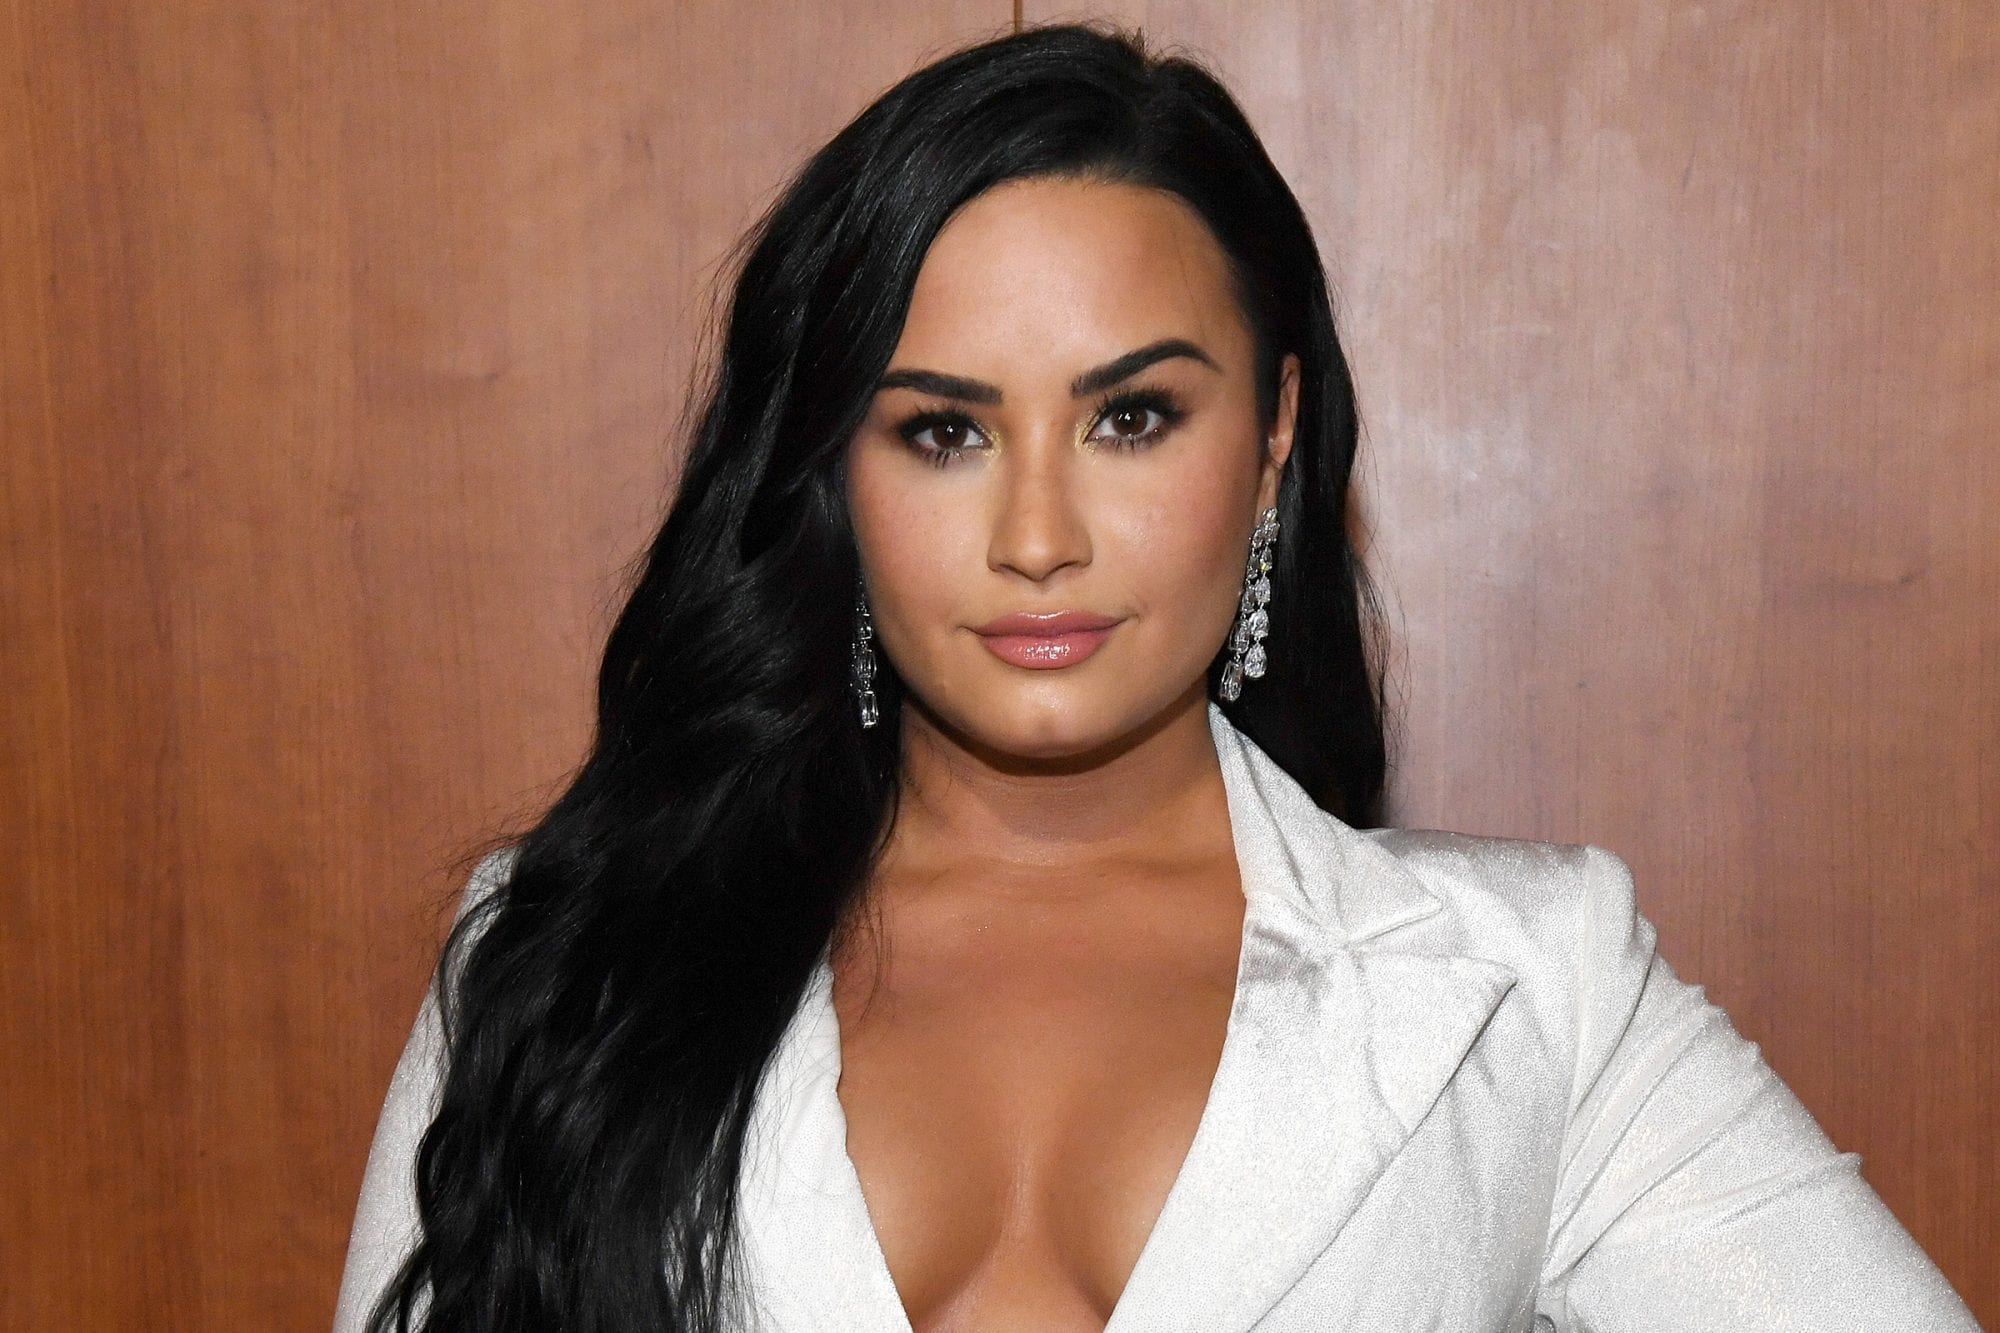 Demi Lovato: Dancing With the Devil la docuserie debutterà su YouTube